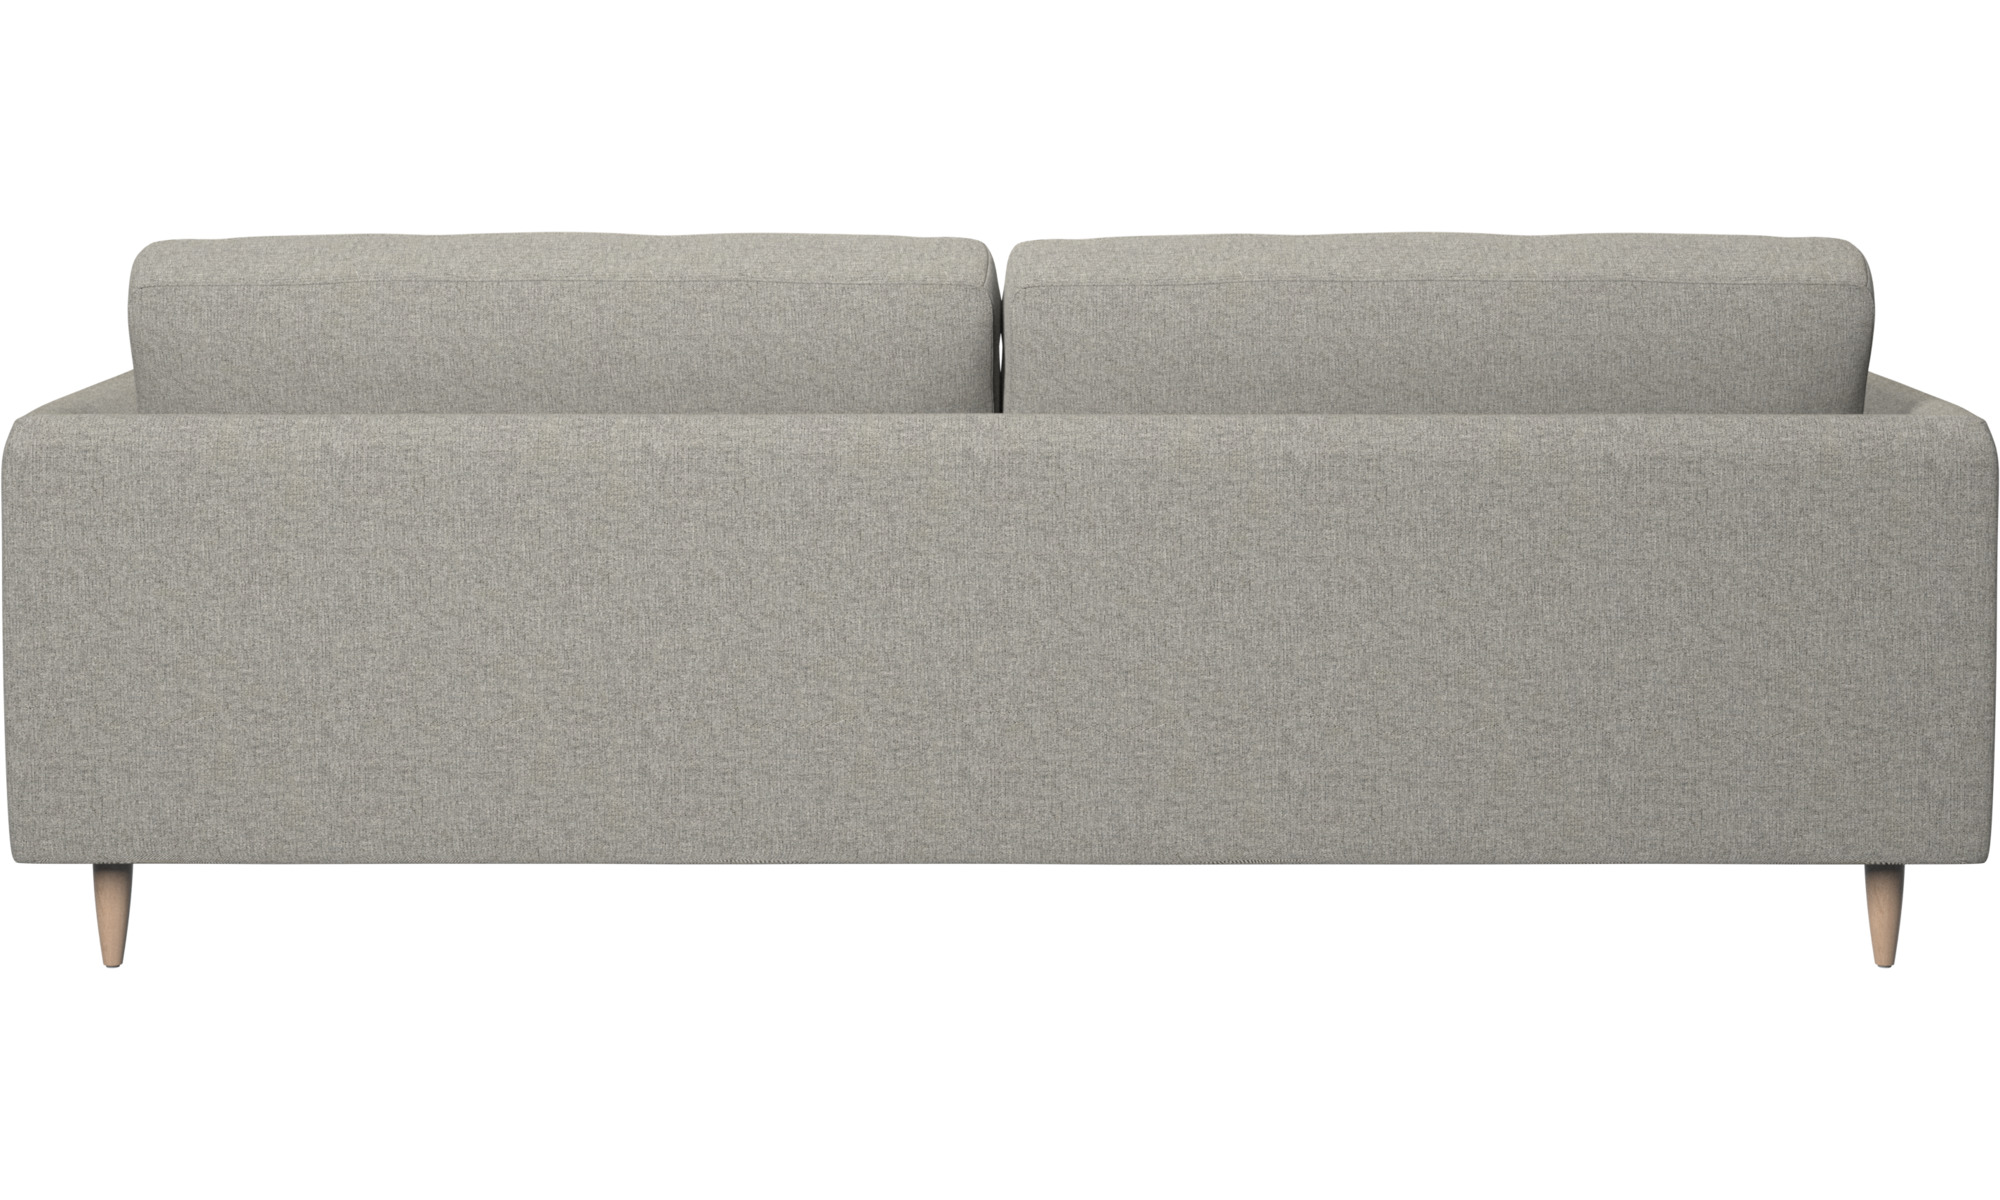 3 Seater Sofas Fargo Sofa Grey Fabric